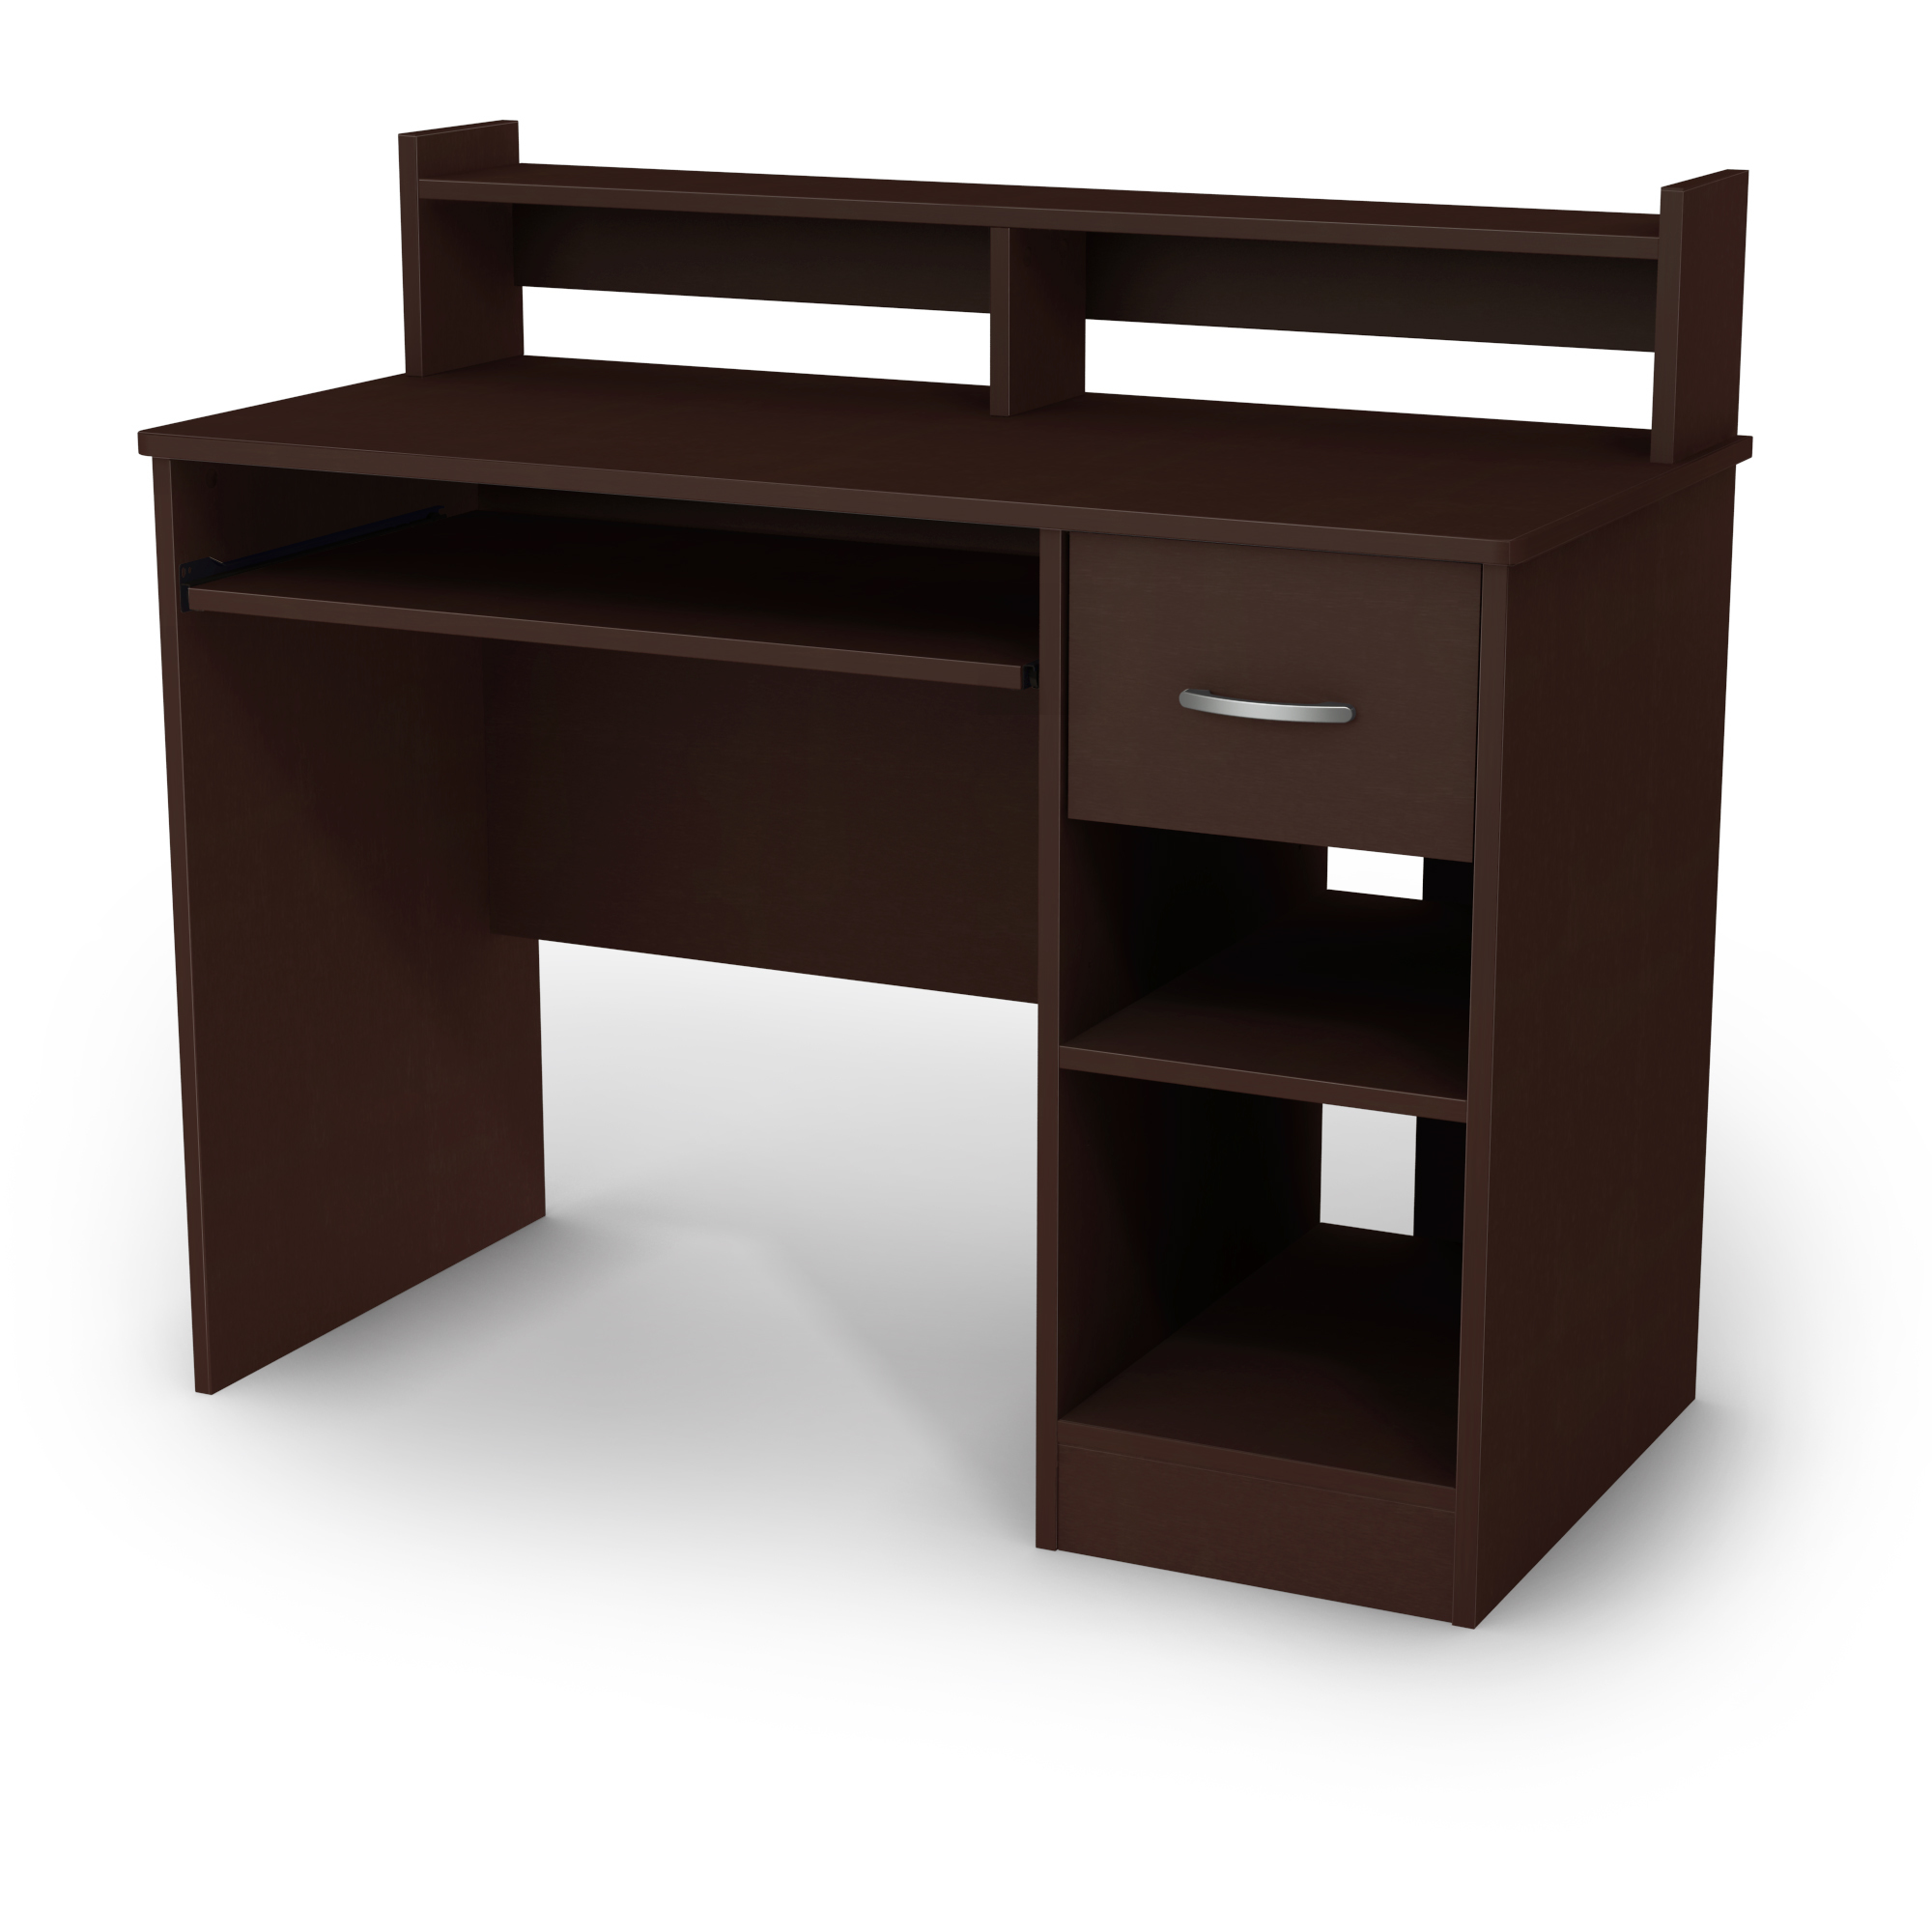 South Shore Smart Basics Small Desk With Keyboard Tray Multiple